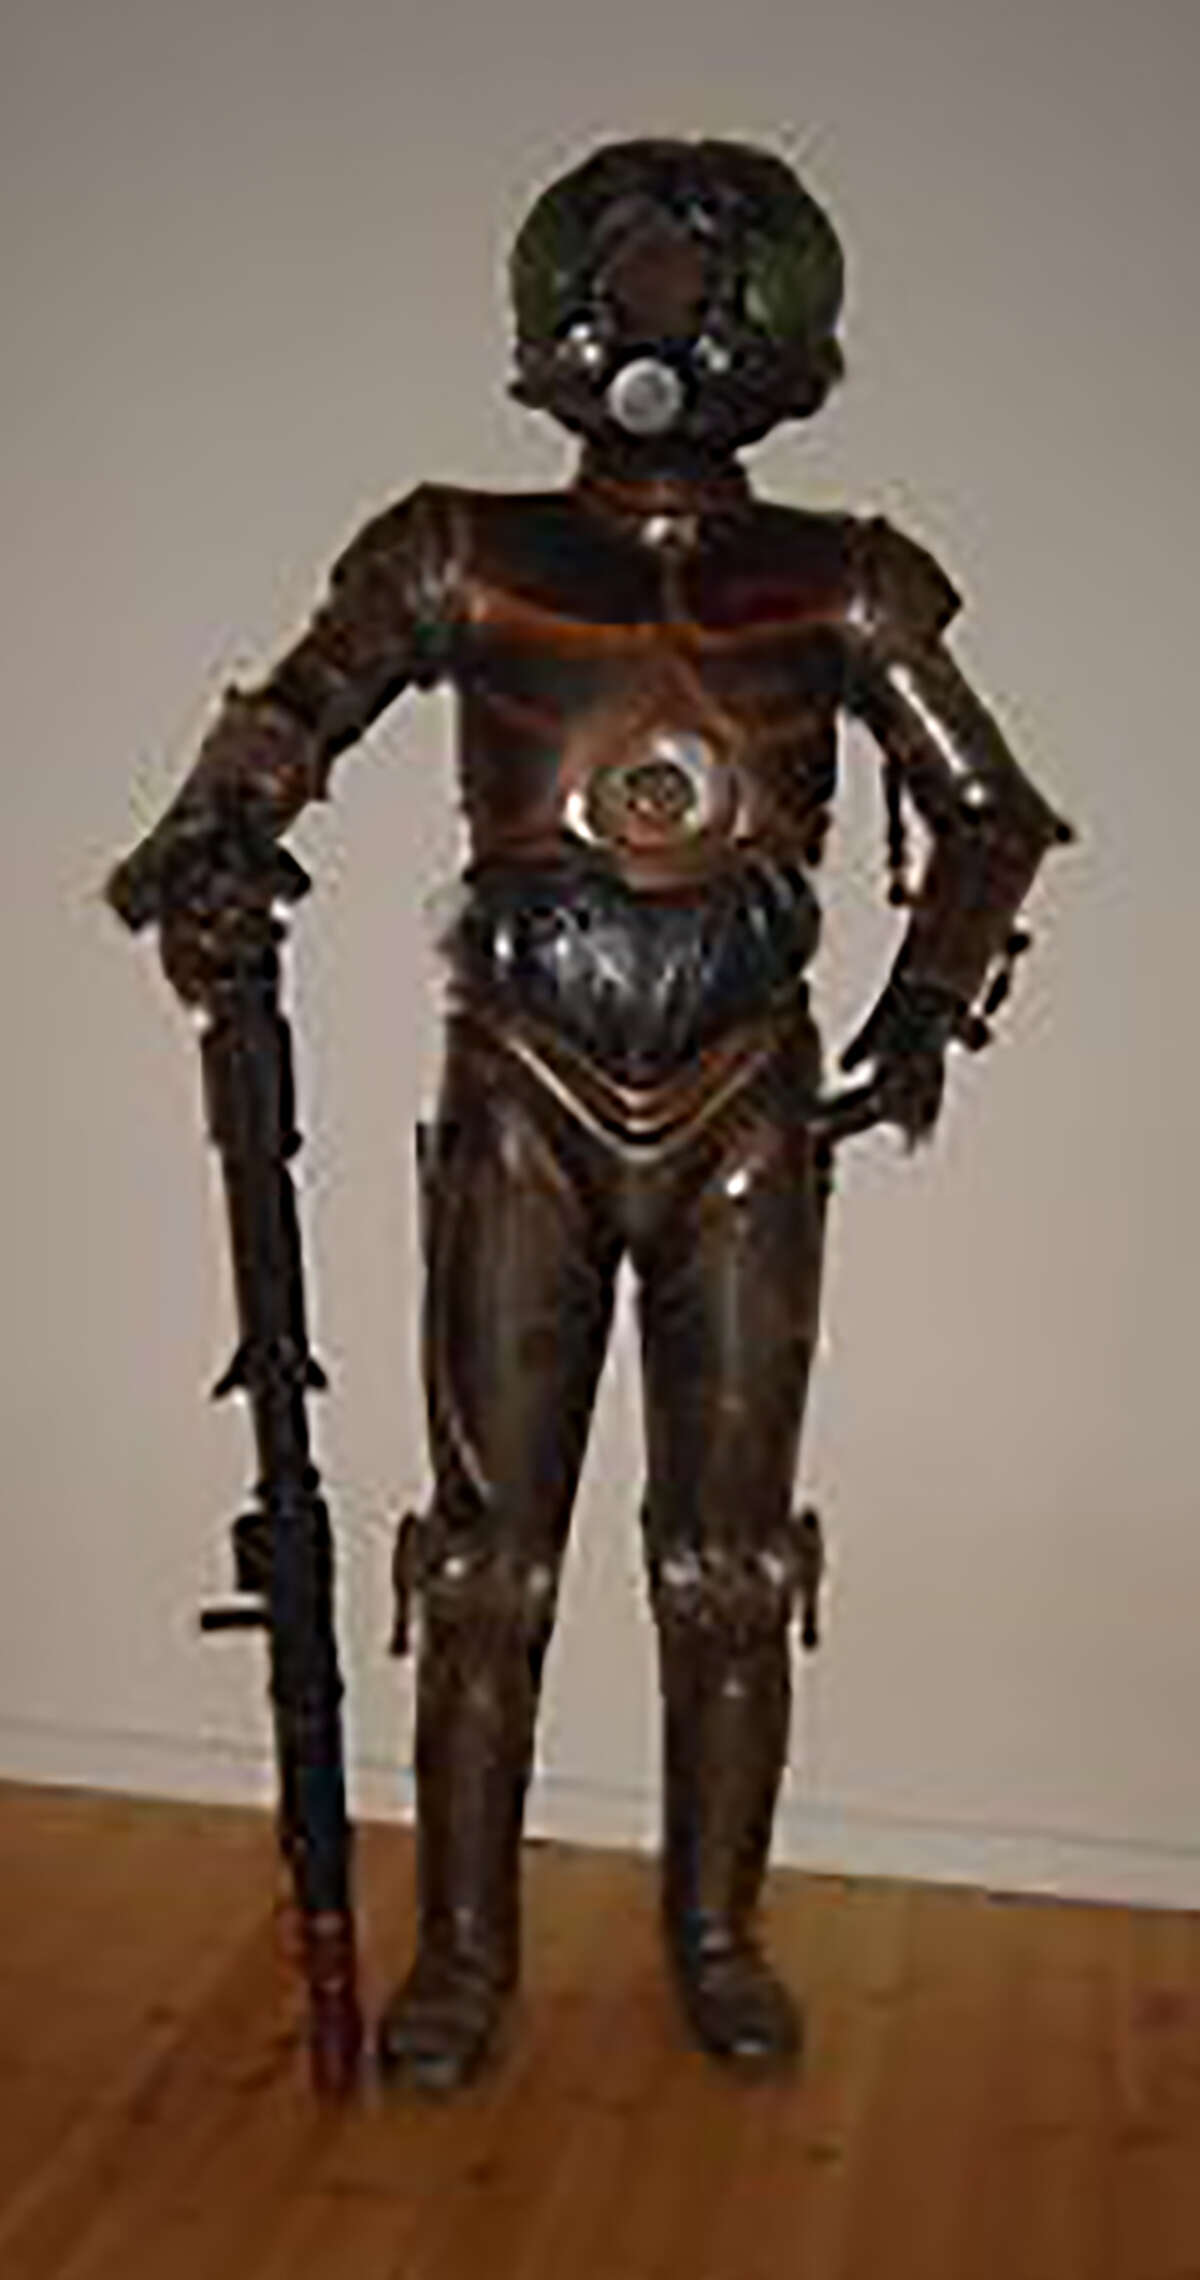 This Star Wars 4-LOM costume sold for $2,300. It comes with an inner suit and armor, according to the eBay listing. The armor is made of fiberglass and brass.